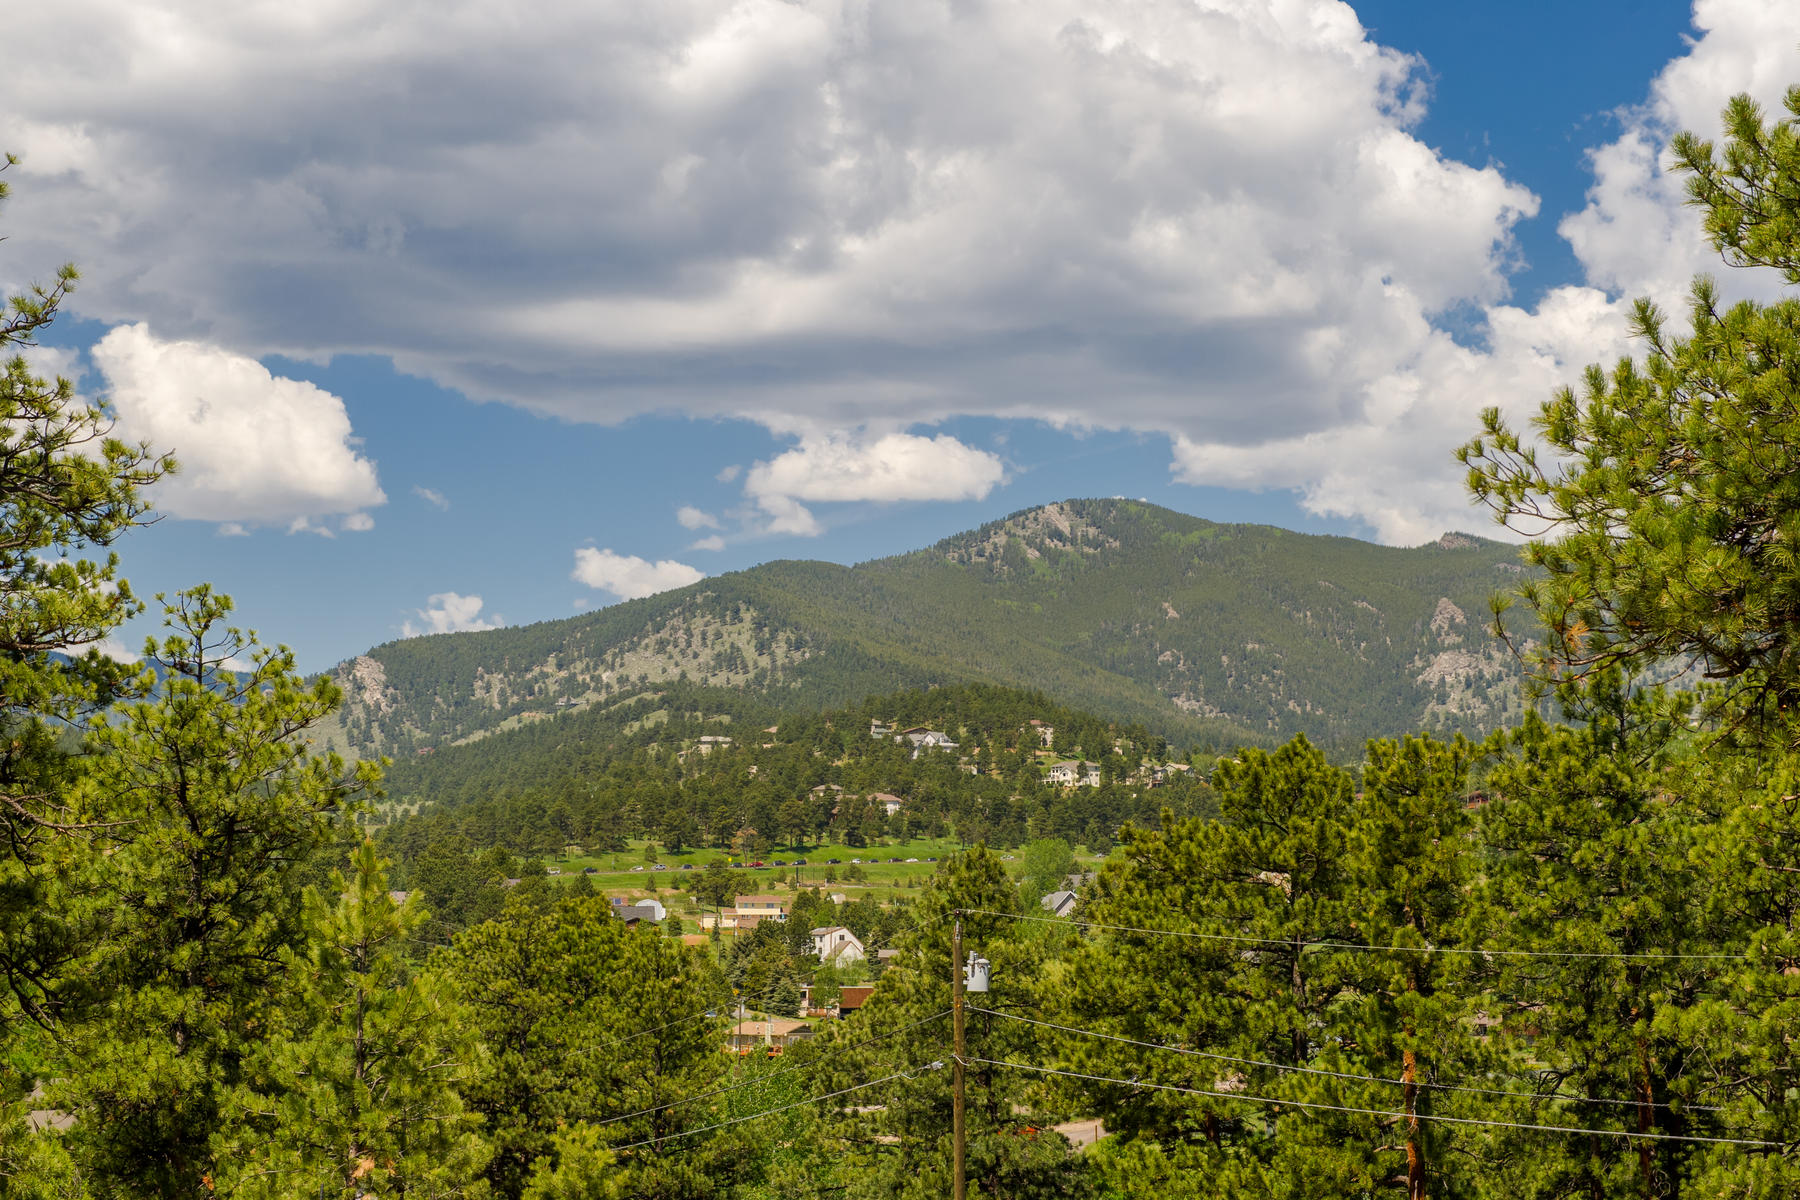 Bergen Peak Views, Quiet, Secluded, Yet Easy Access to Amenities 3377 Bronco Lane Evergreen, Colorado 80439 United States